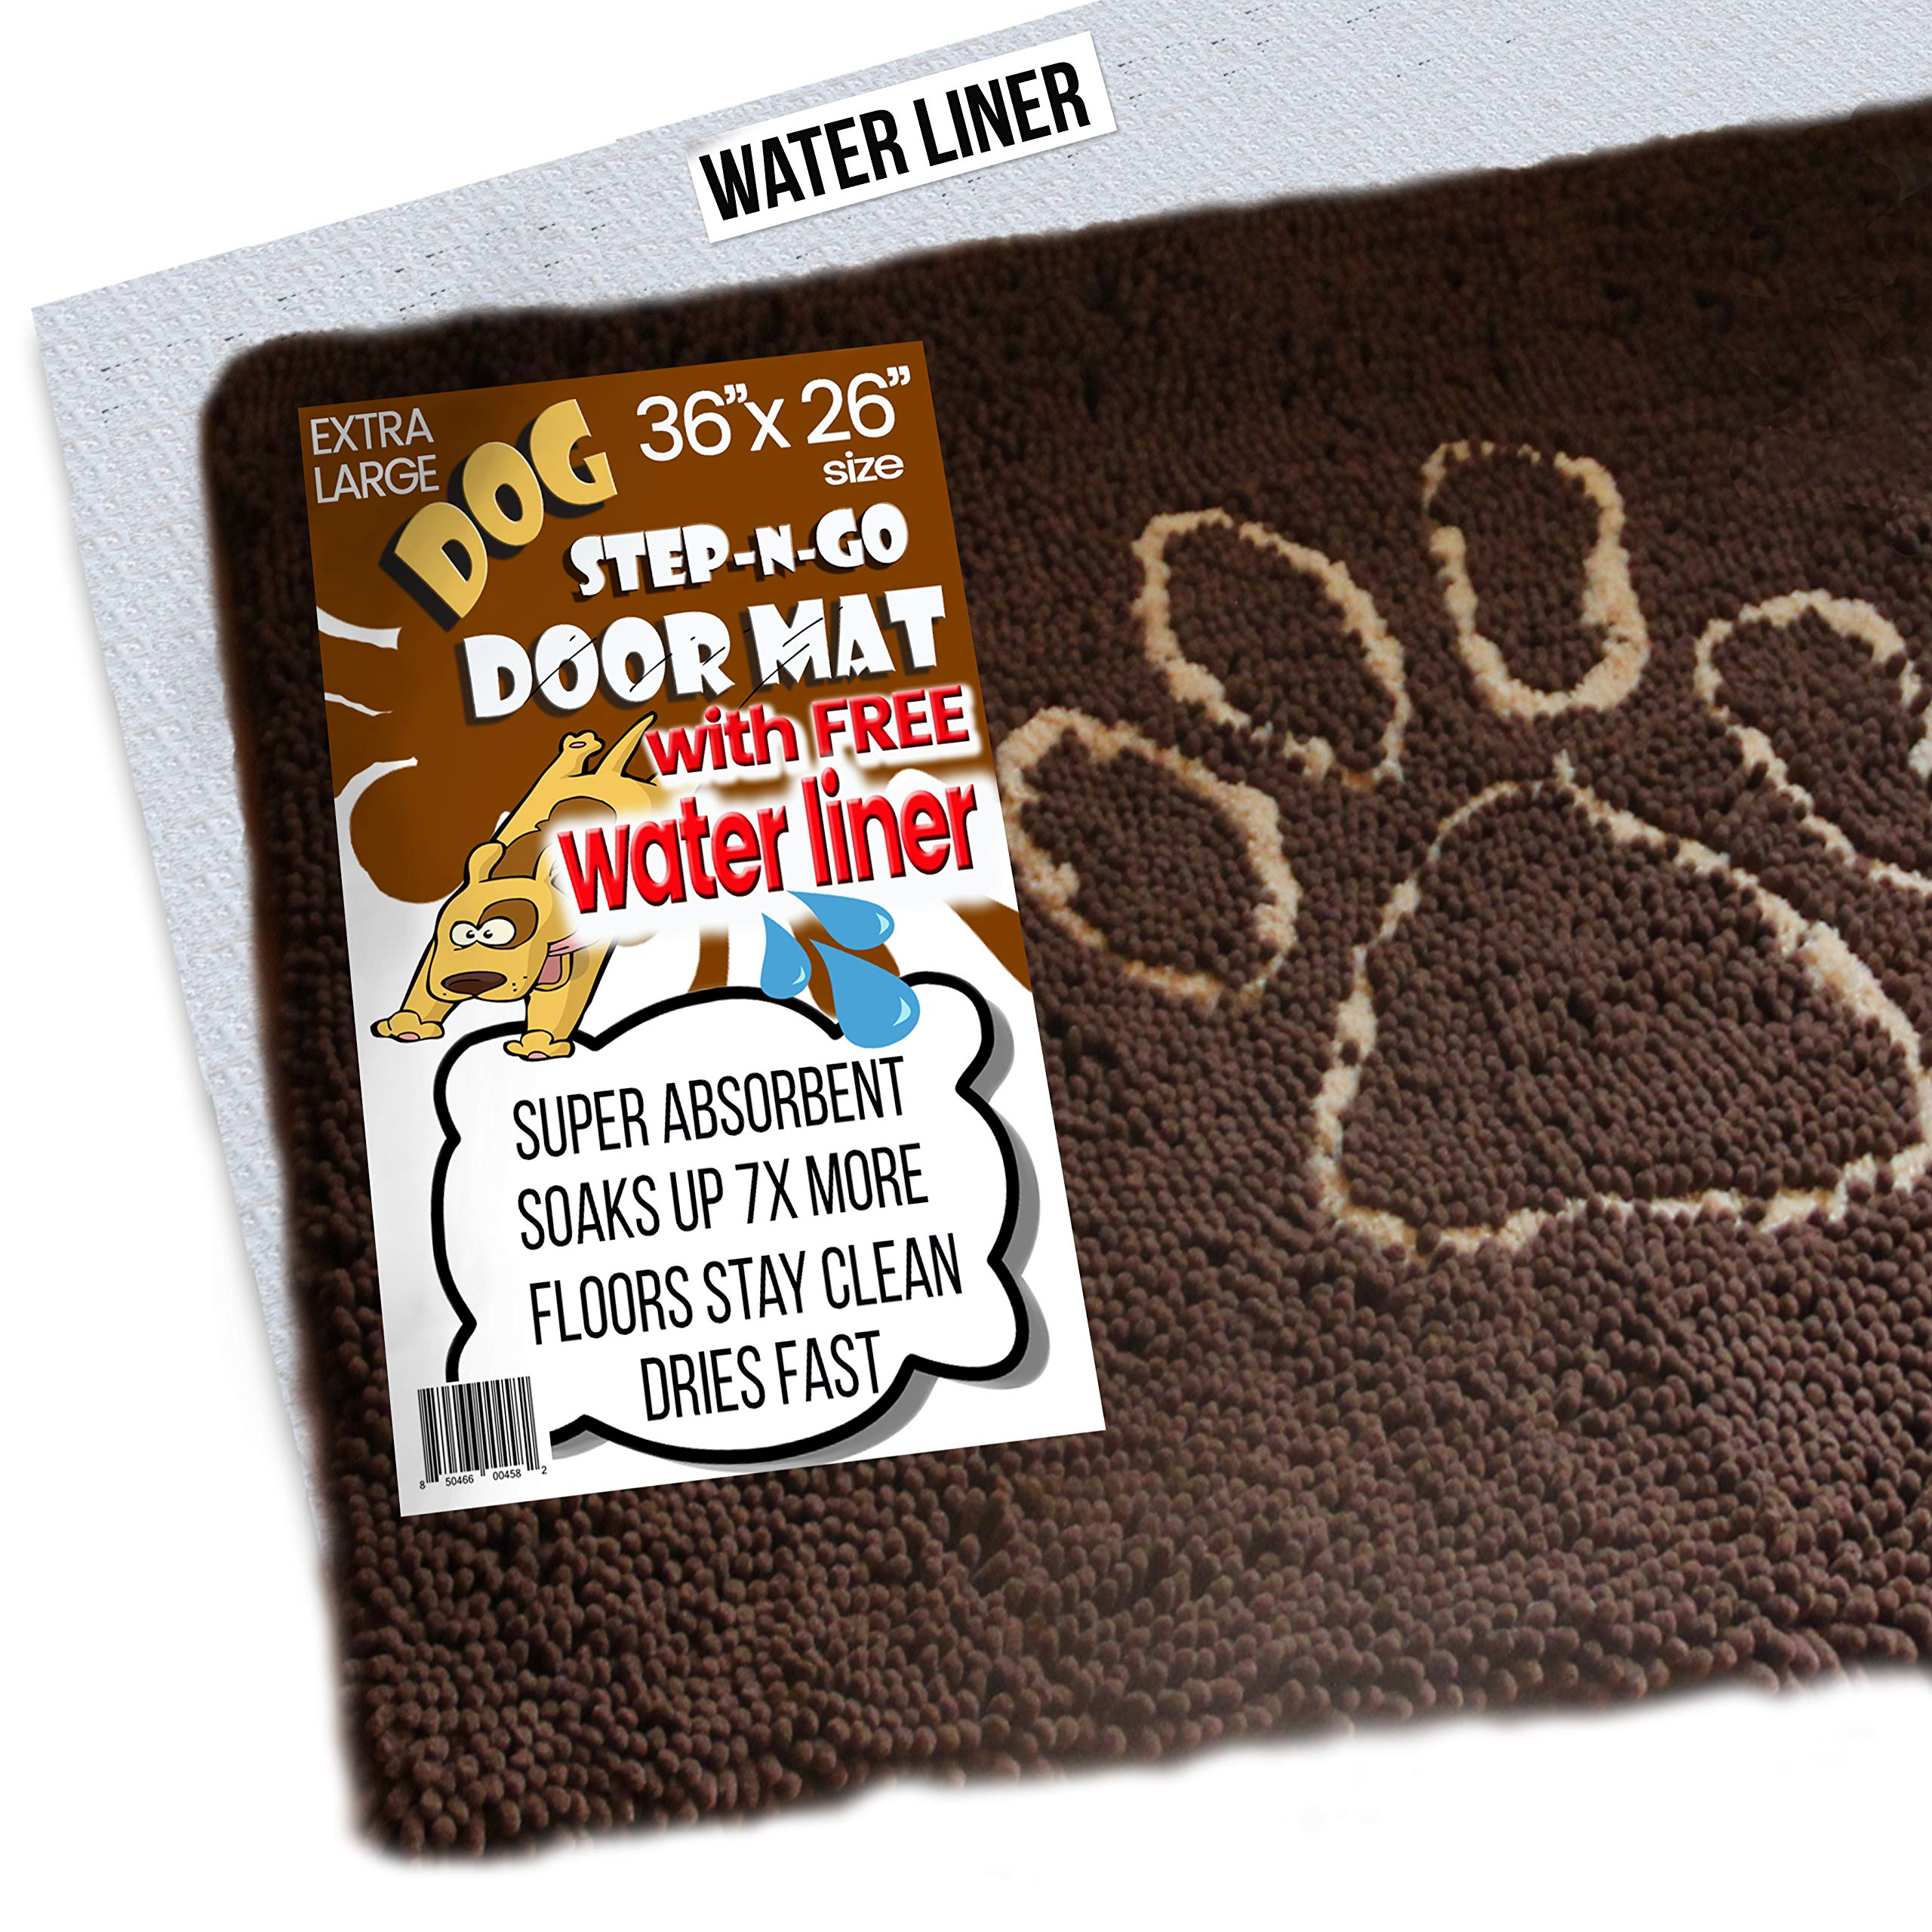 iPrimio XL Extra Thick Micro Fiber Door Mat - Super Absorbent. Includes Water Proof Liner - Size 36'' X 26'' Exclusive Brown Color by iPrimio